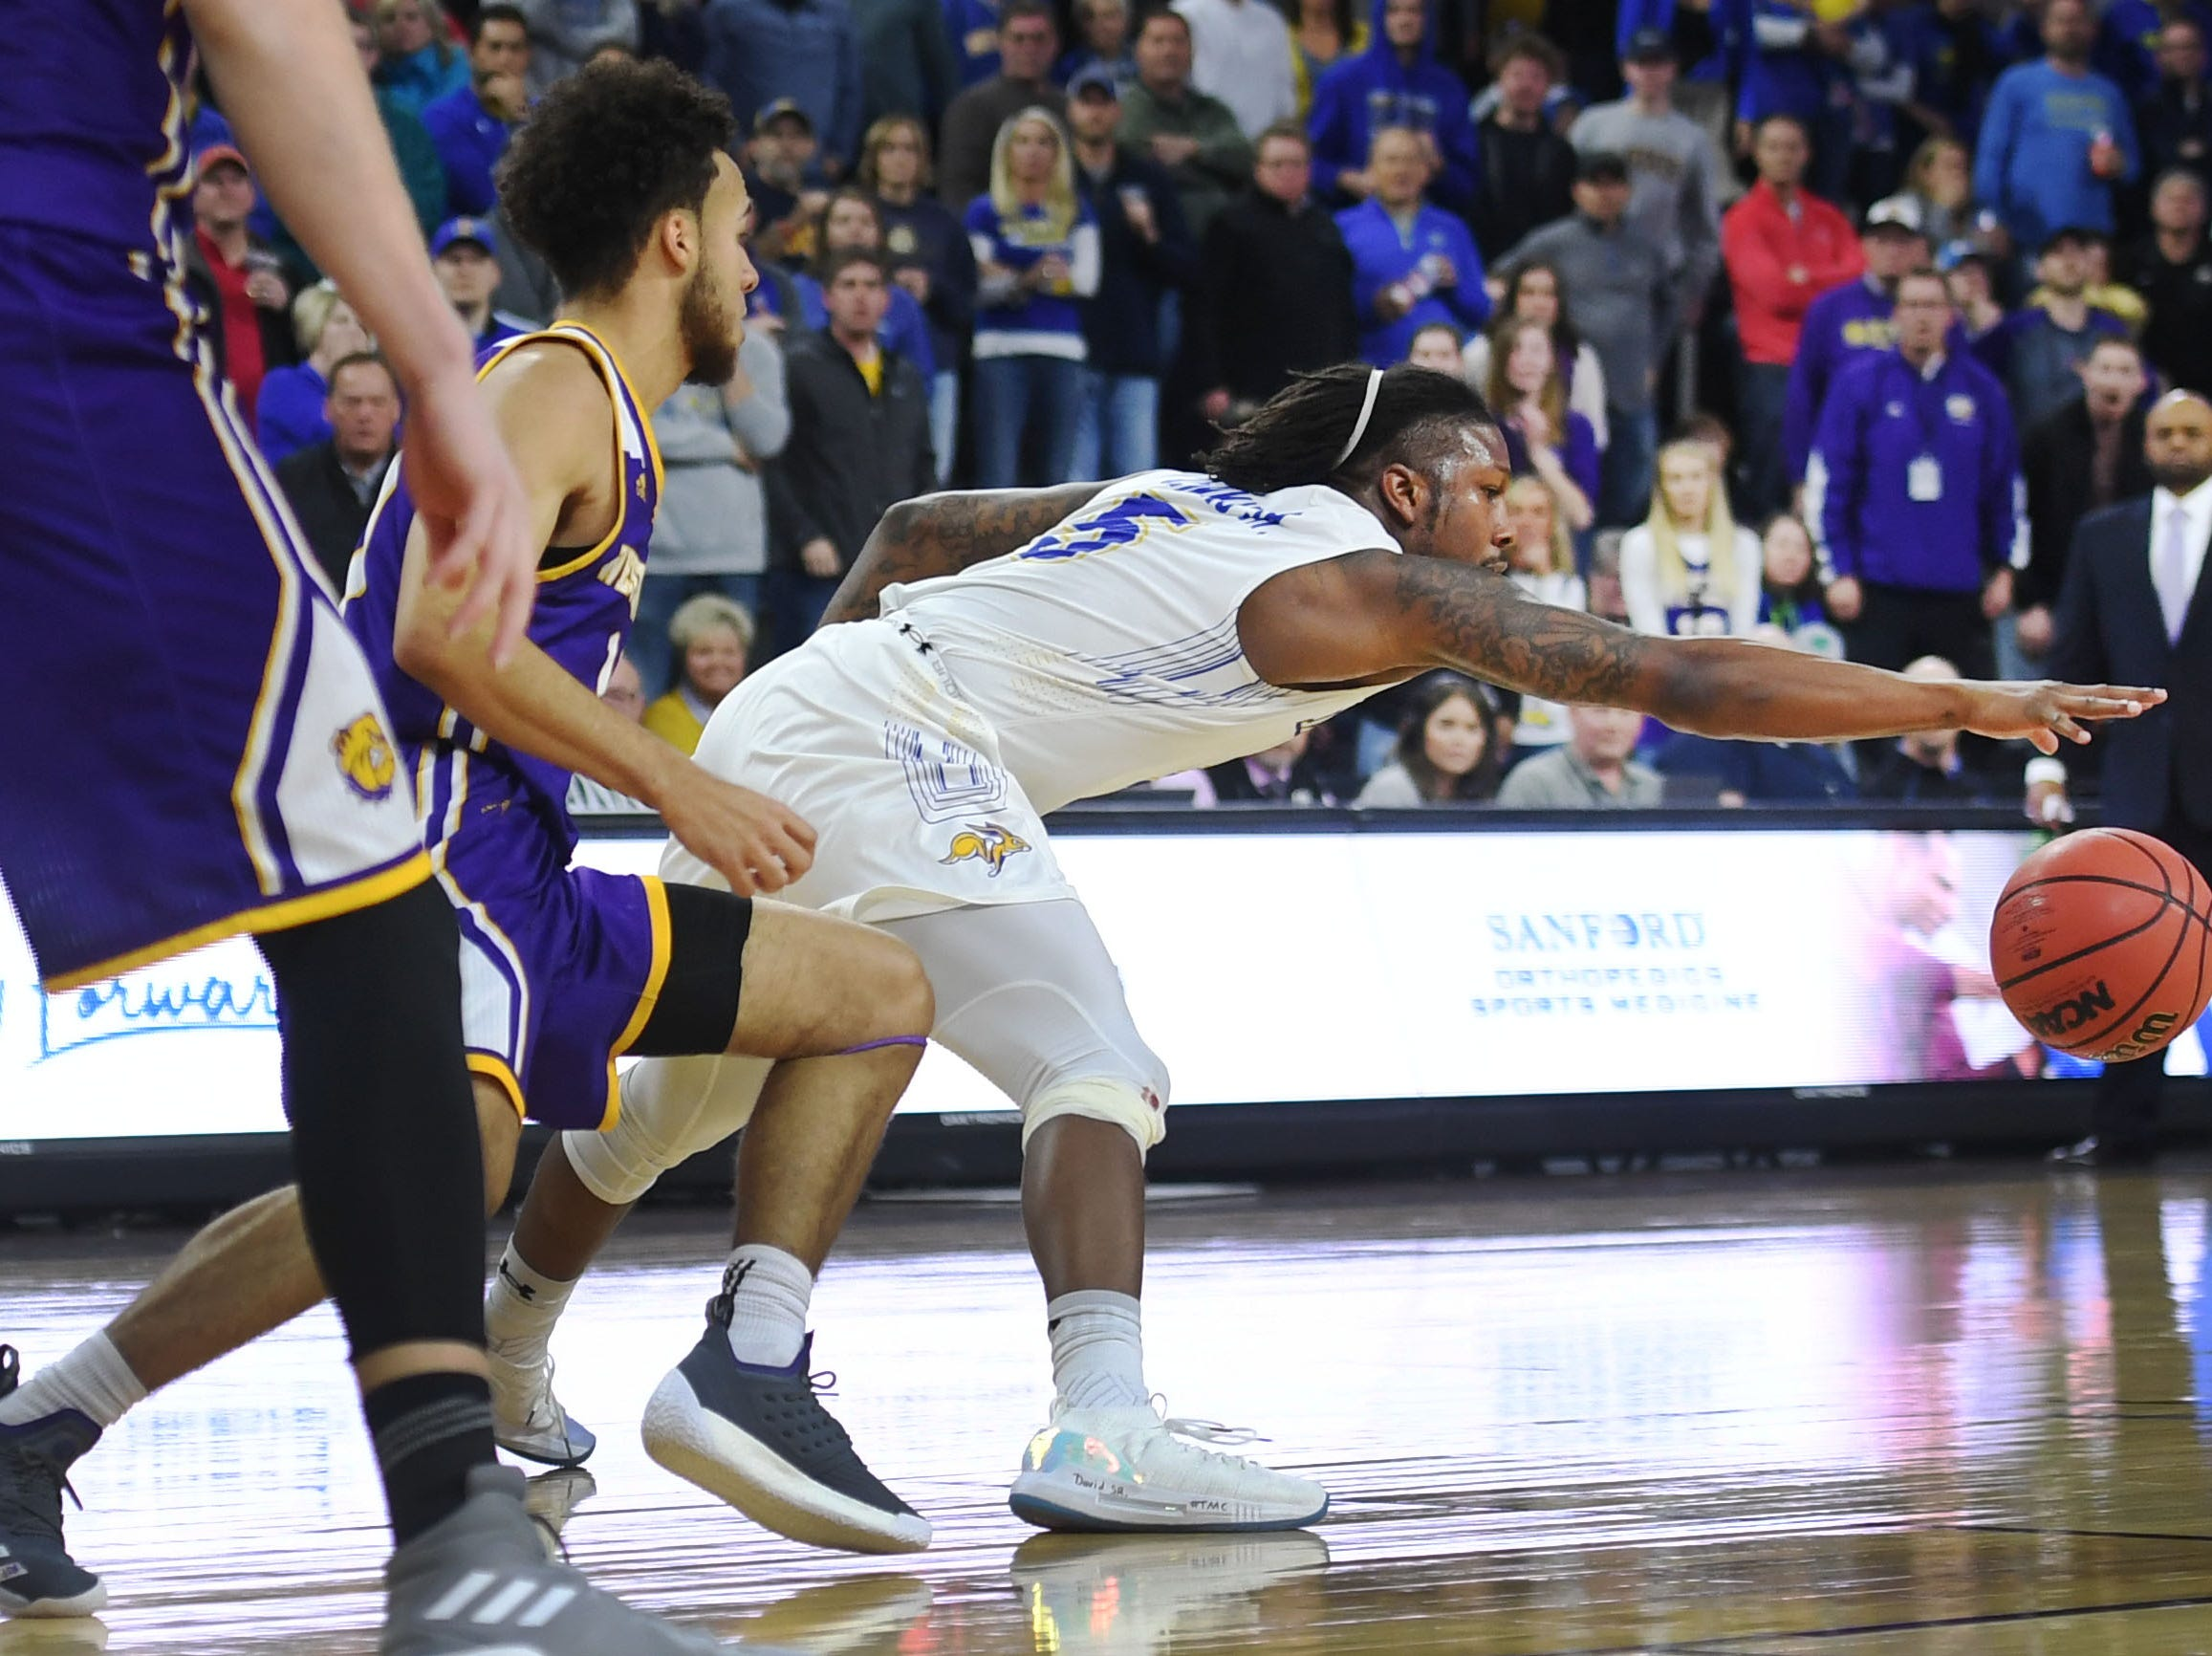 SDSU's David Jenkins attempts to gain control of the ball during the game against Western Illinois Saturday, March 9, in the Summit League tournament at the Denny Sanford Premier Center in Sioux Falls.